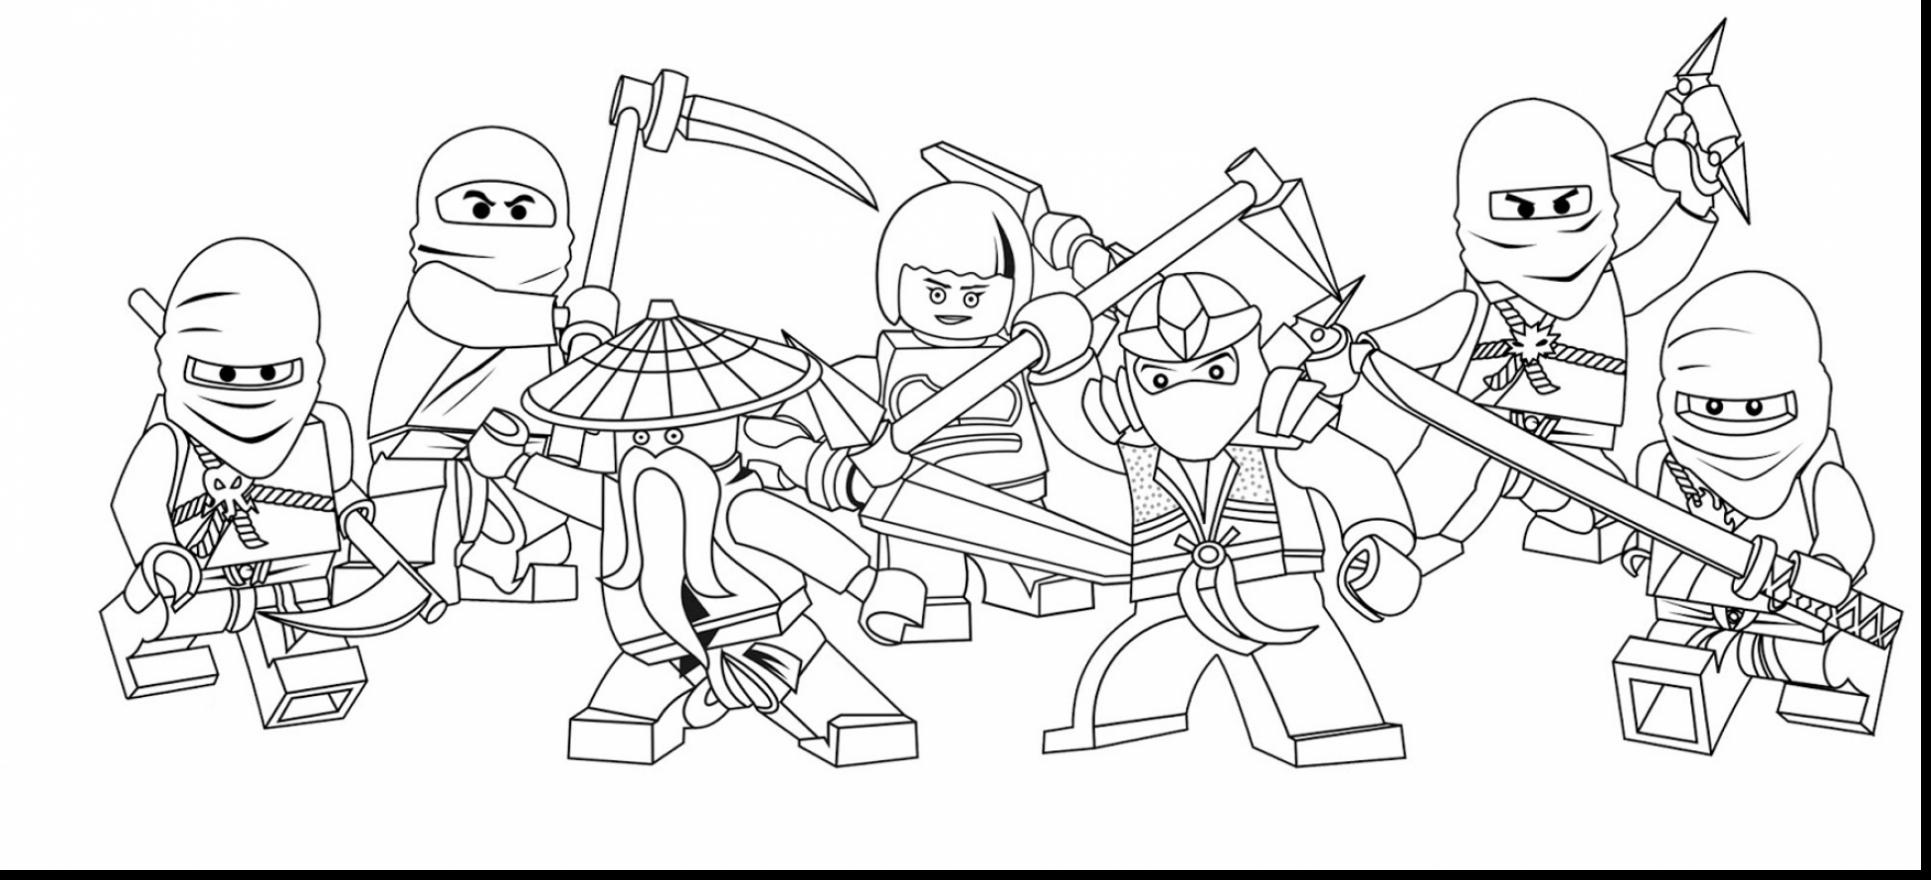 Astounding Lego Ninjago Coloring Pages With Lego Coloring Pages To